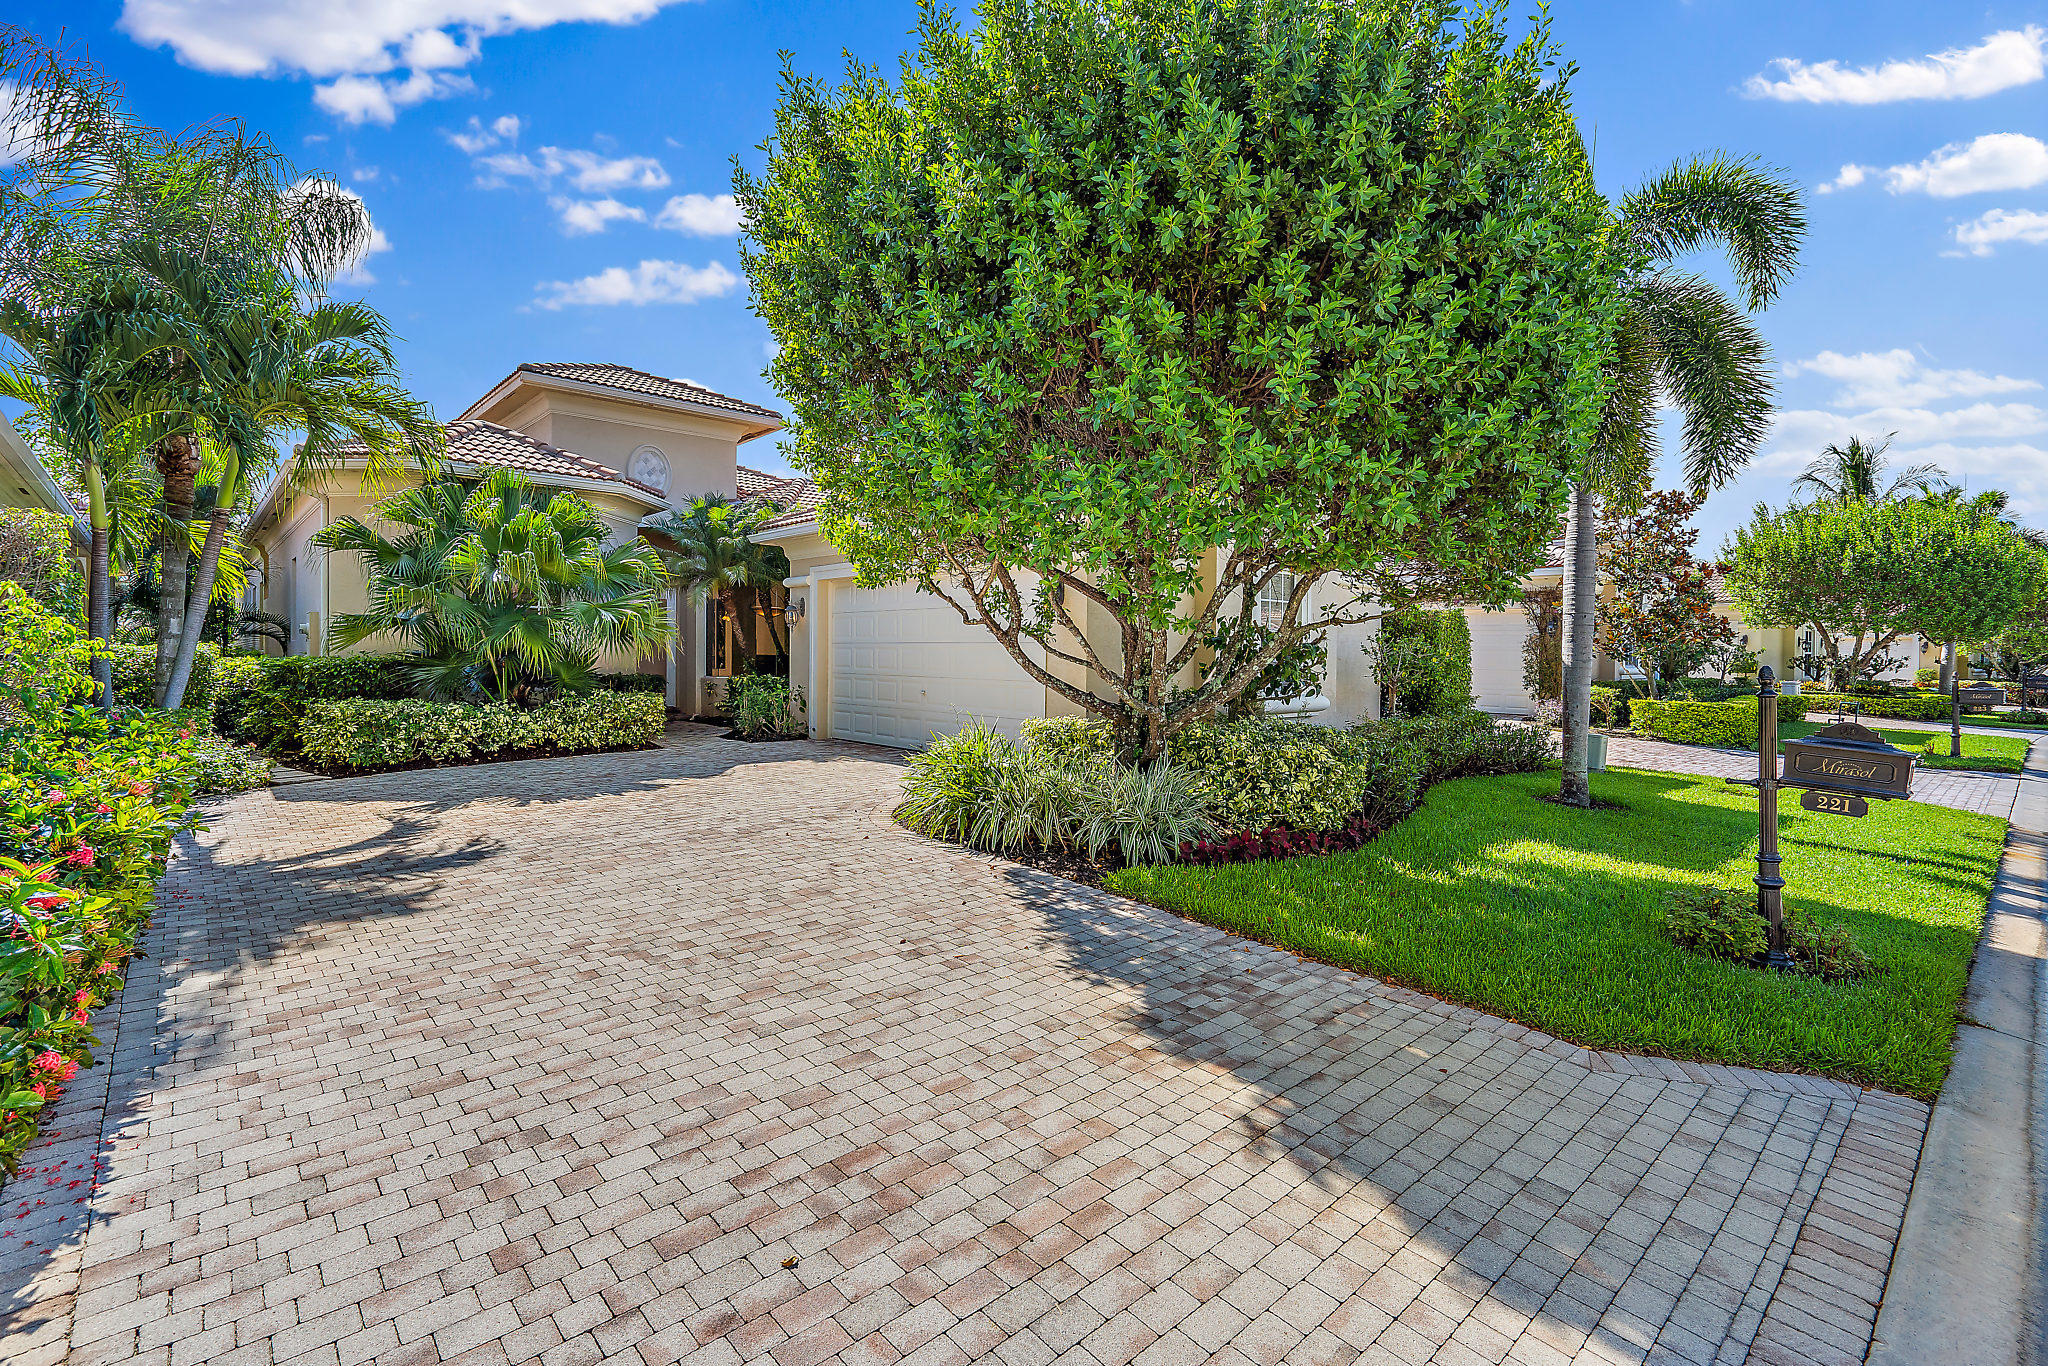 Home for sale in Mirasol Country Club Palm Beach Gardens Florida